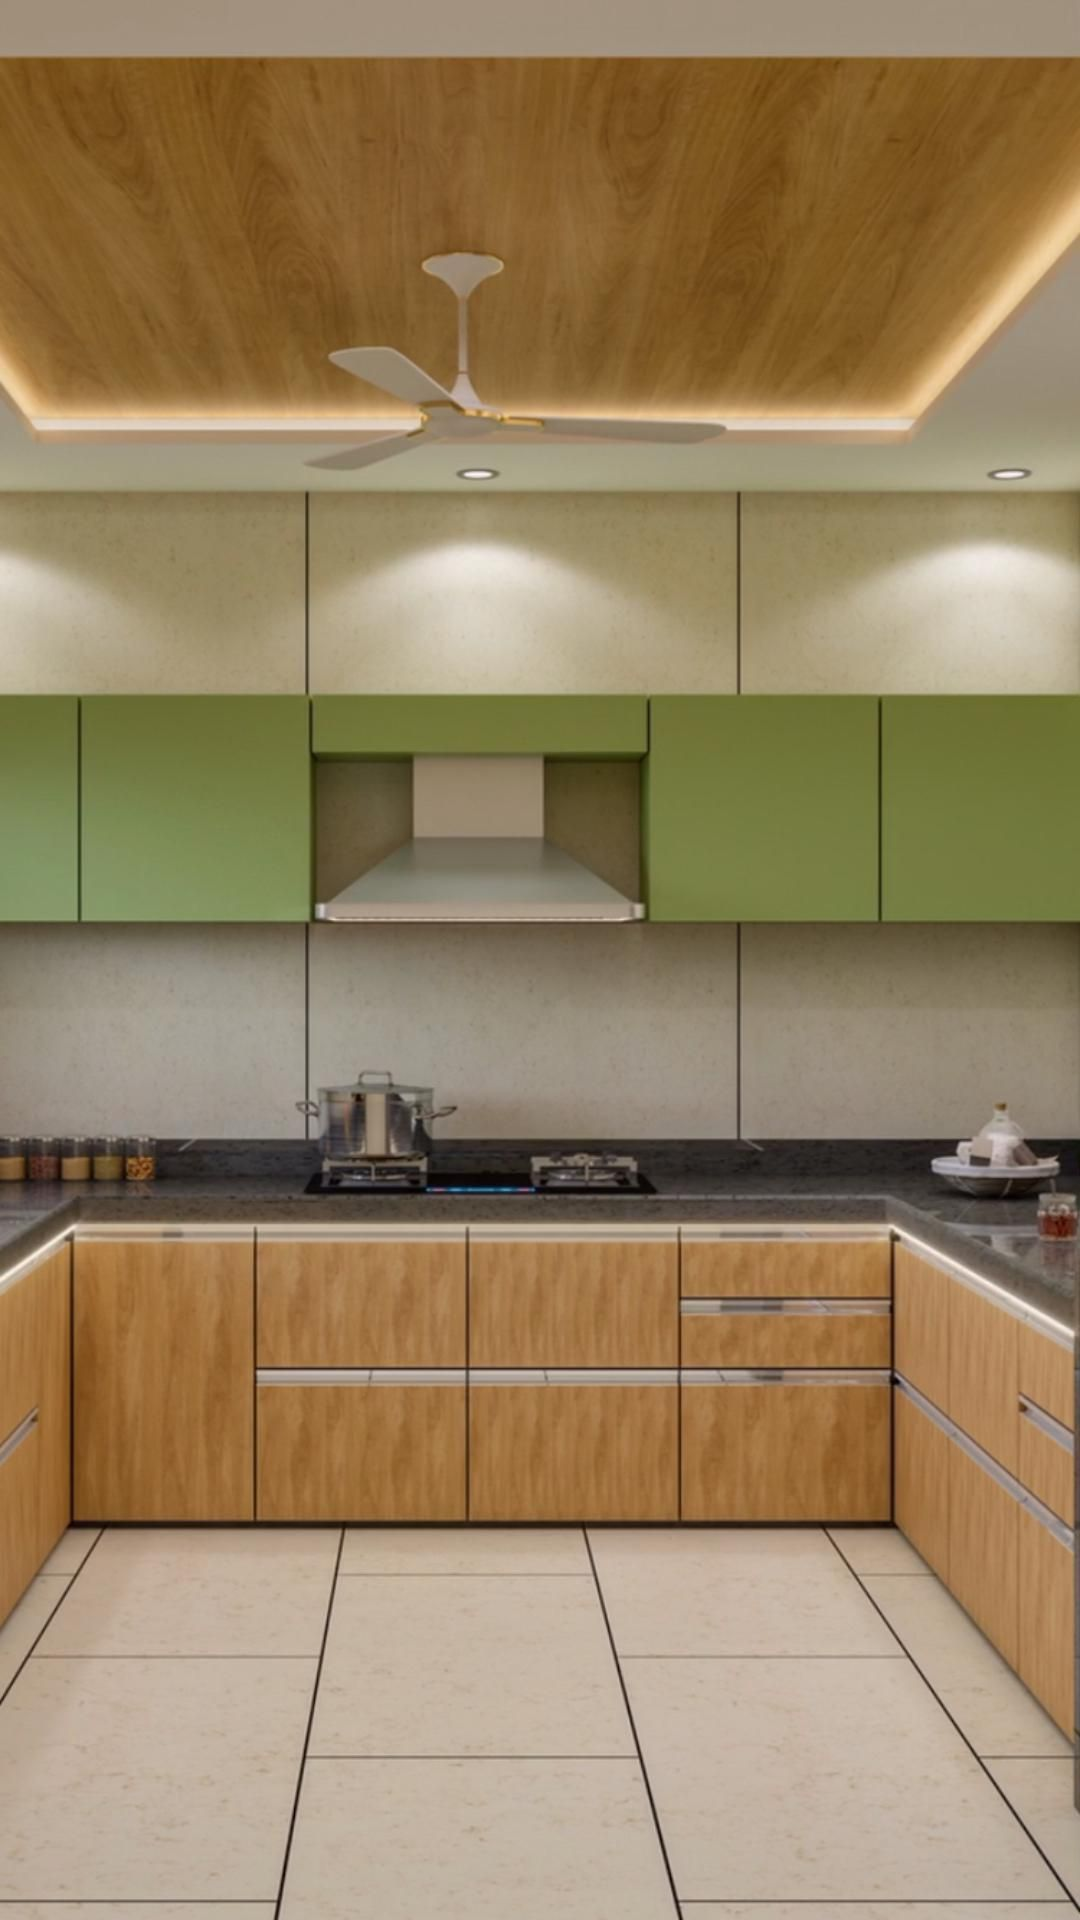 See our latest kitchen project